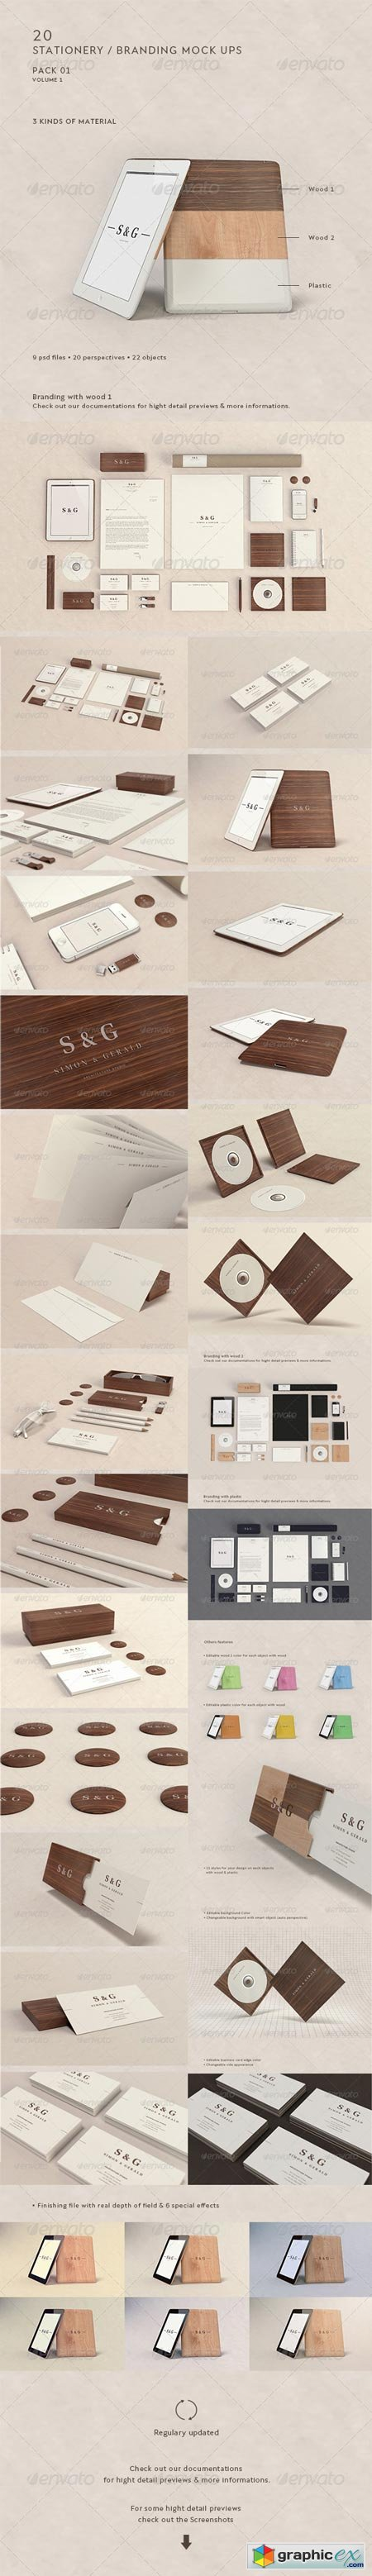 Stationery Branding Mock-Up - Woods & Plastic 4754874